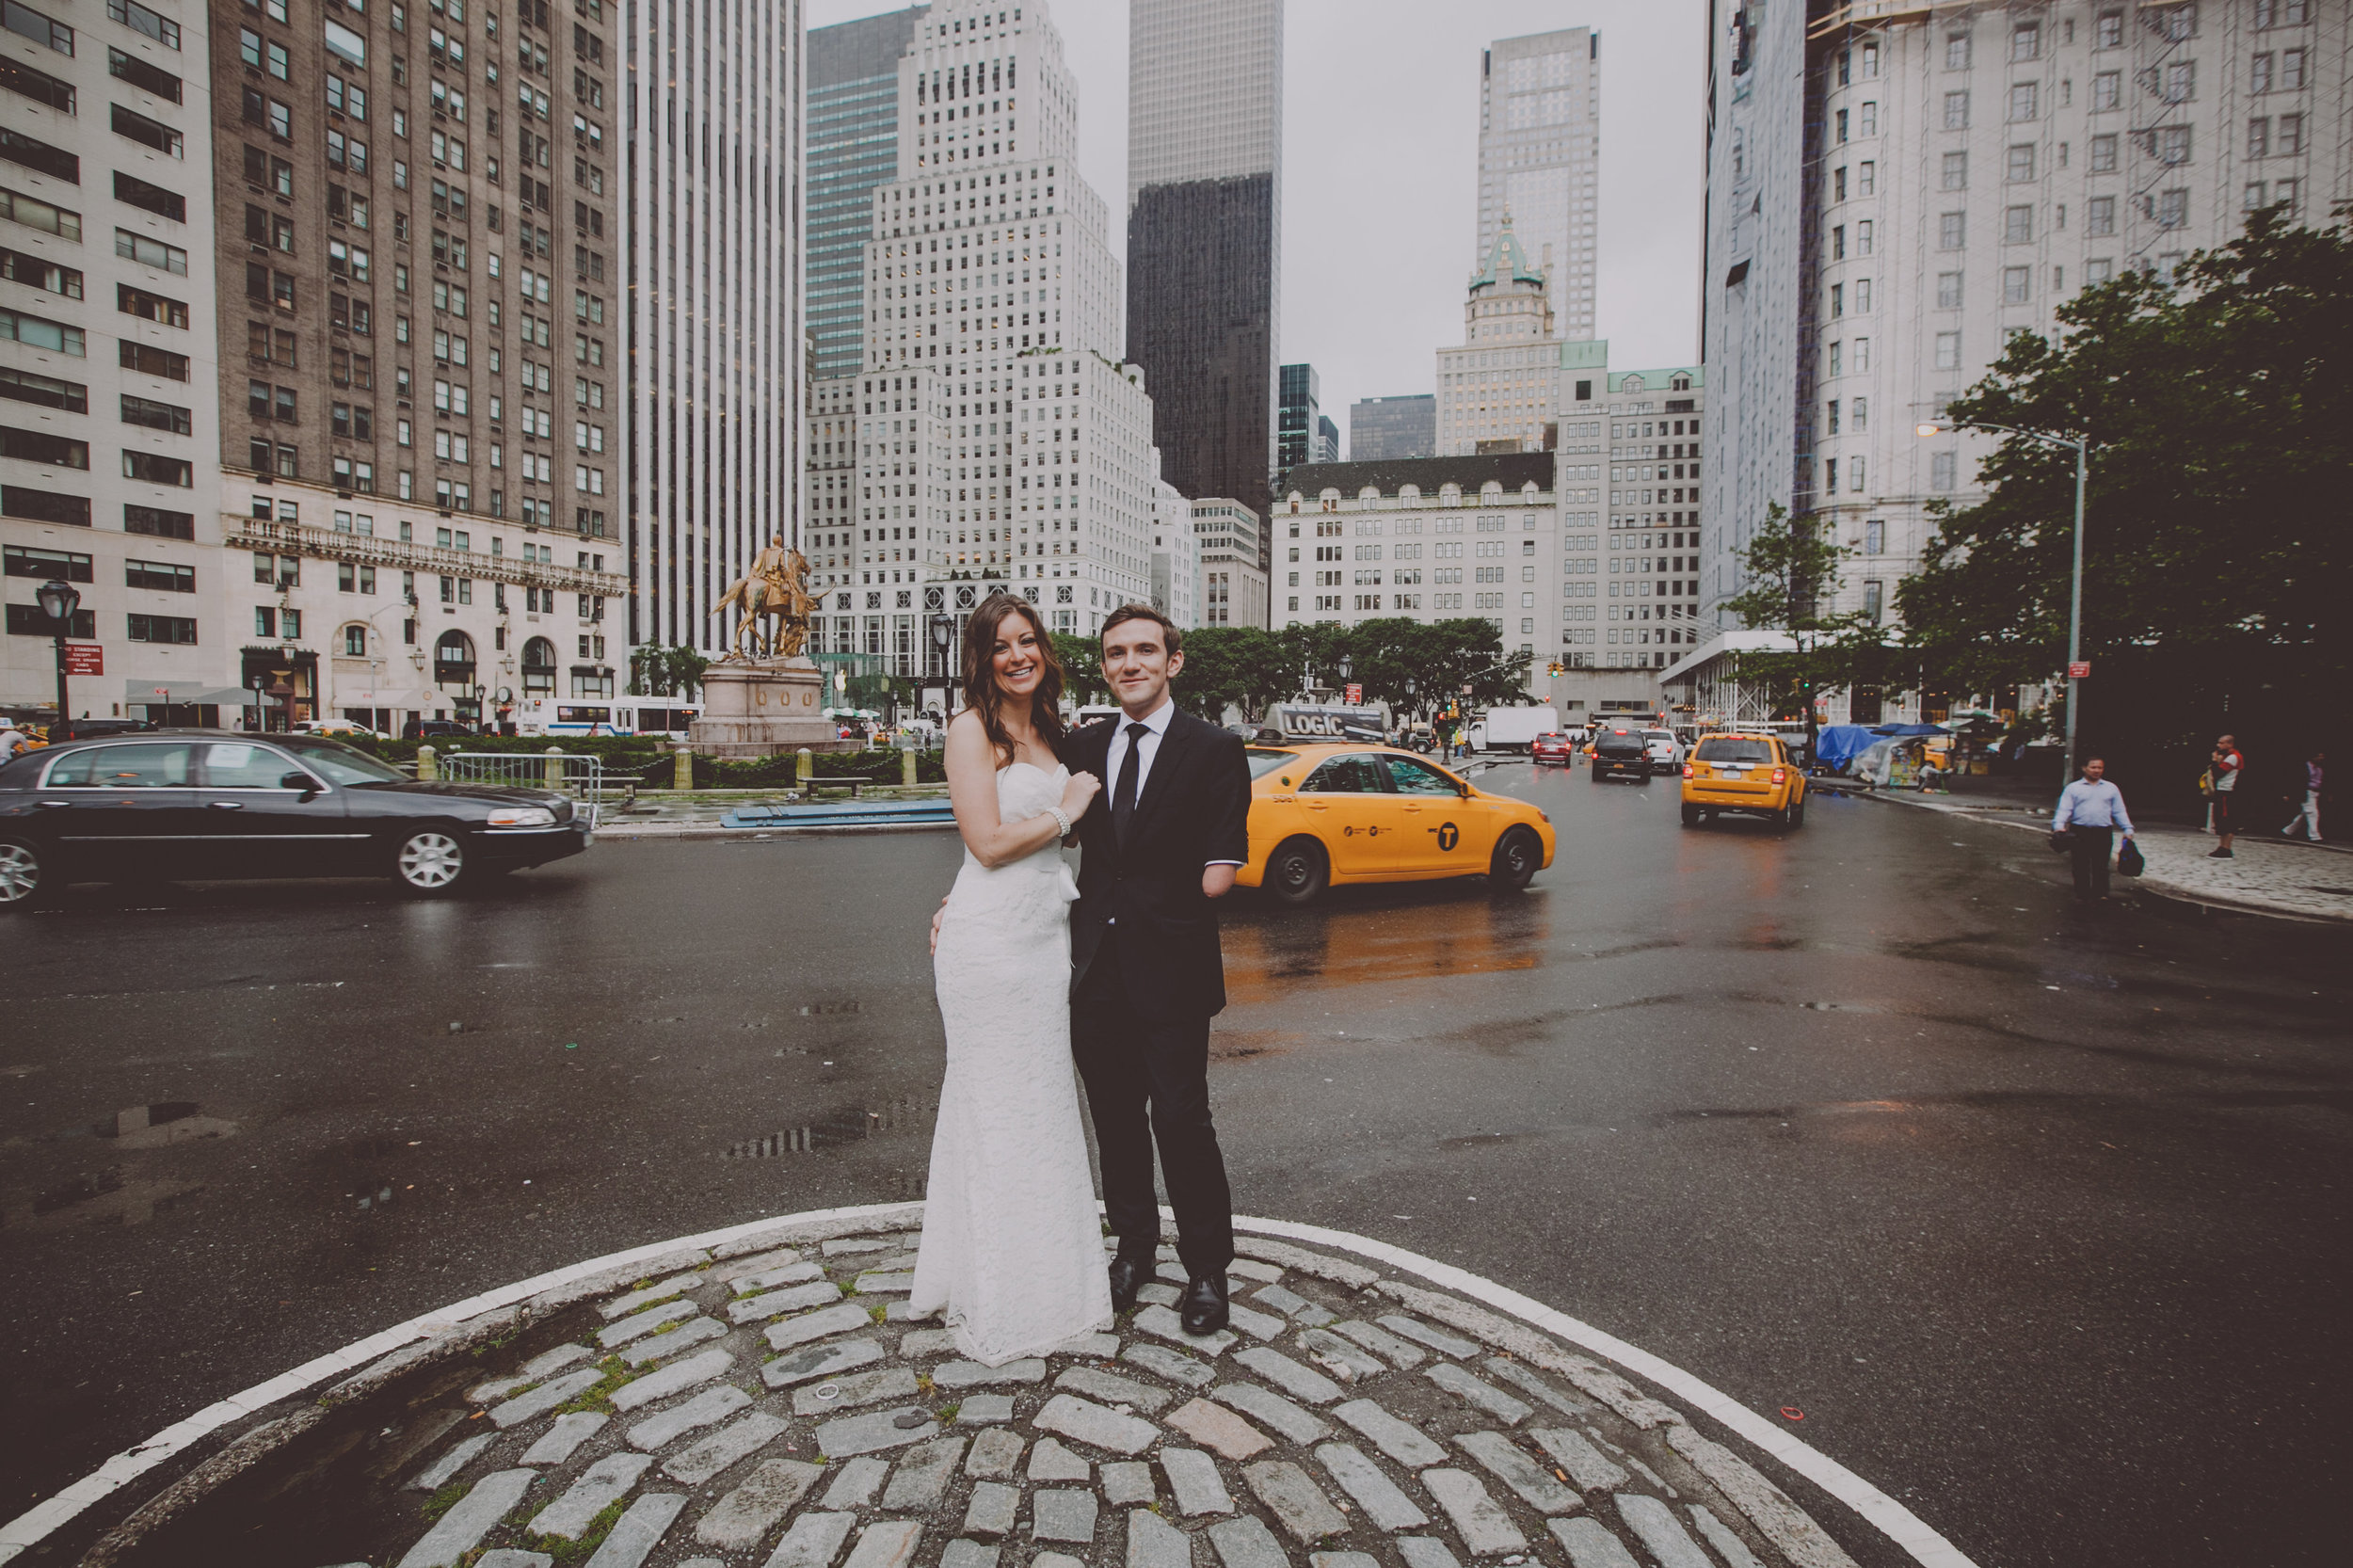 Central_Park_Rainy_Wedding_NYC_E454lopement.JPG